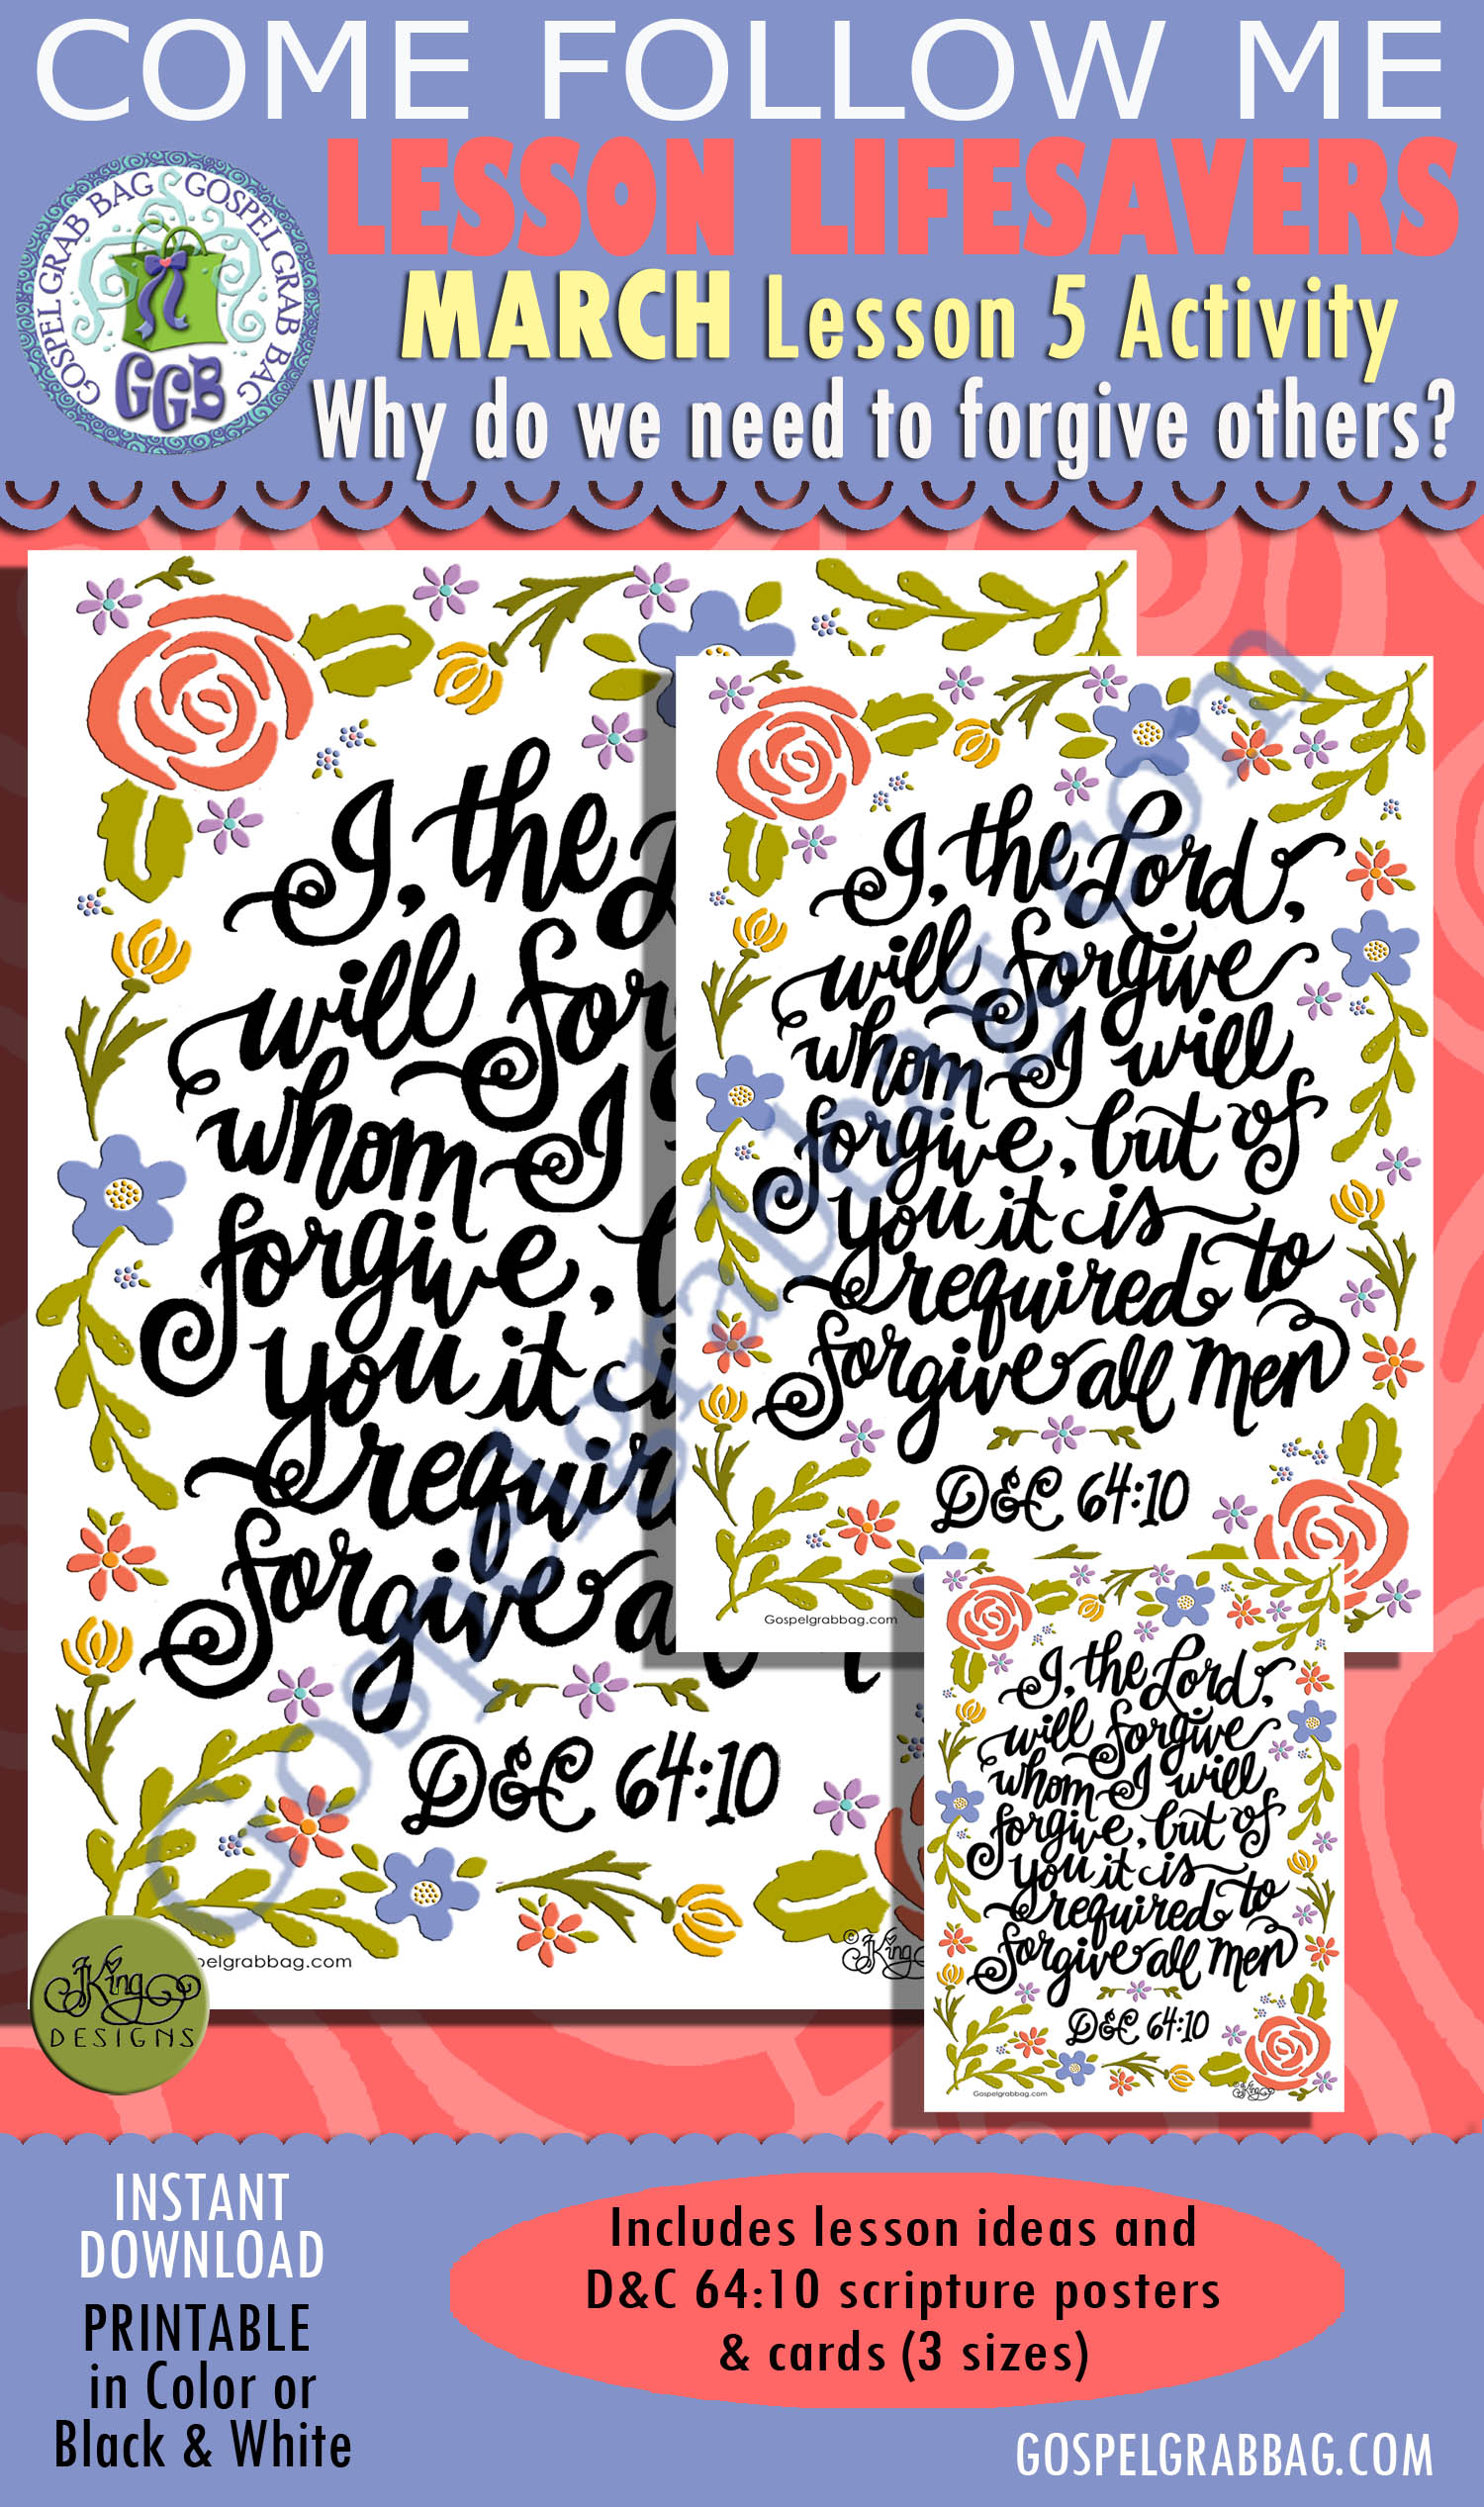 """$2.00 MARCH Lesson 5 Come Follow Me """"Why do we need to forgive others?"""" ACTIVITY: D&C 64:10 Forgive all men, Scritpure Poster / Cards"""